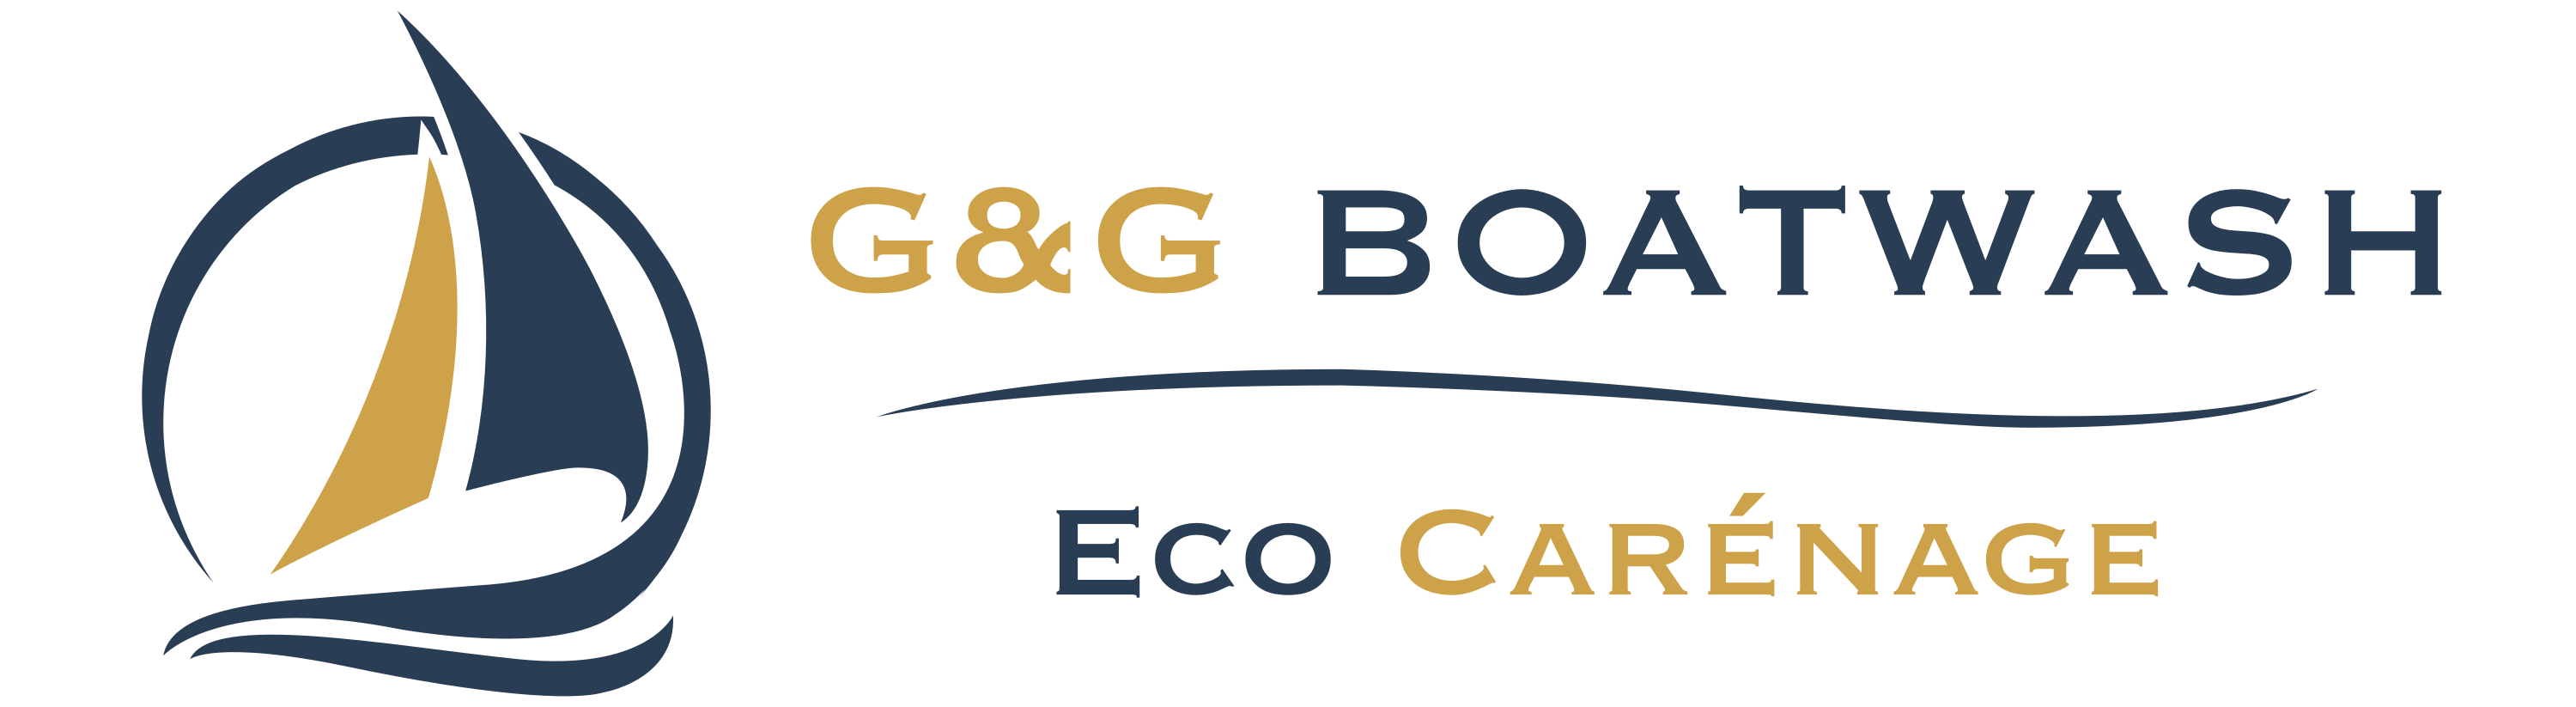 G&G Boatwash.com